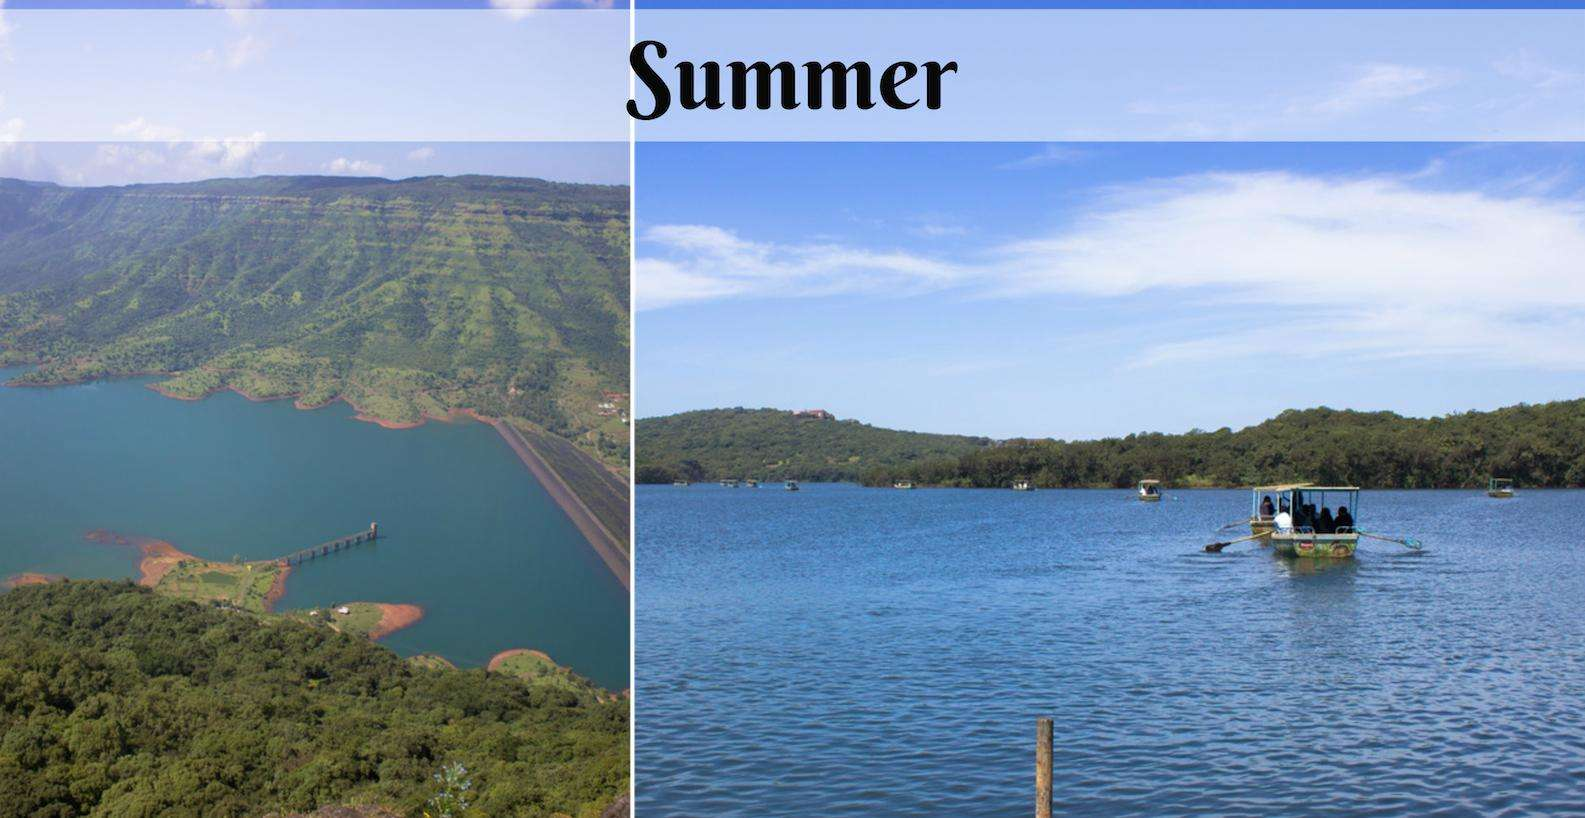 mahabaleshwar-in-summer.jpg